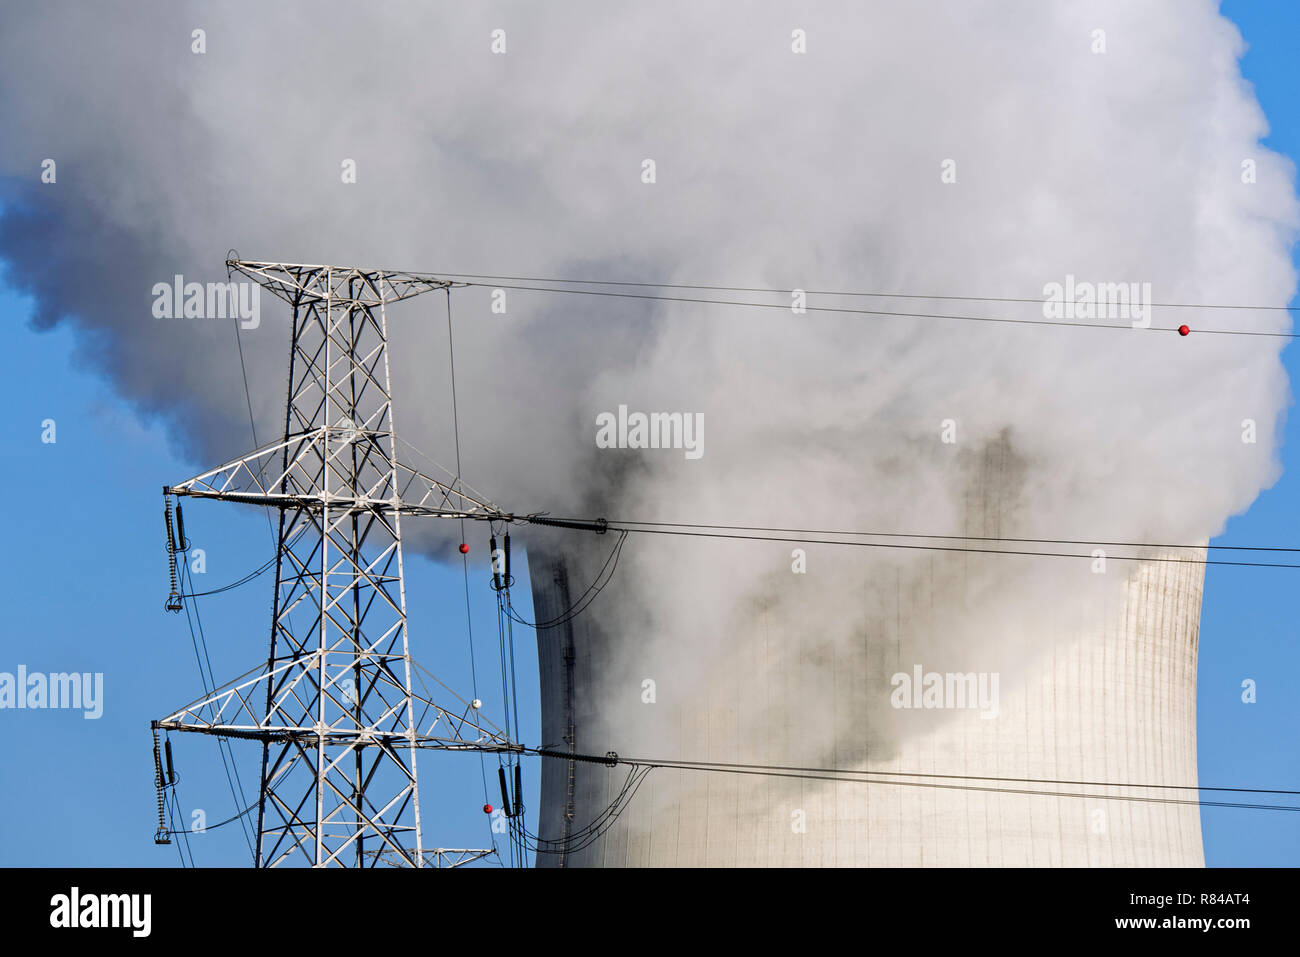 High-voltage electricity pylon / transmission tower and steam / vapour coming from cooling tower of nuclear power station / nuclear power plant - Stock Image